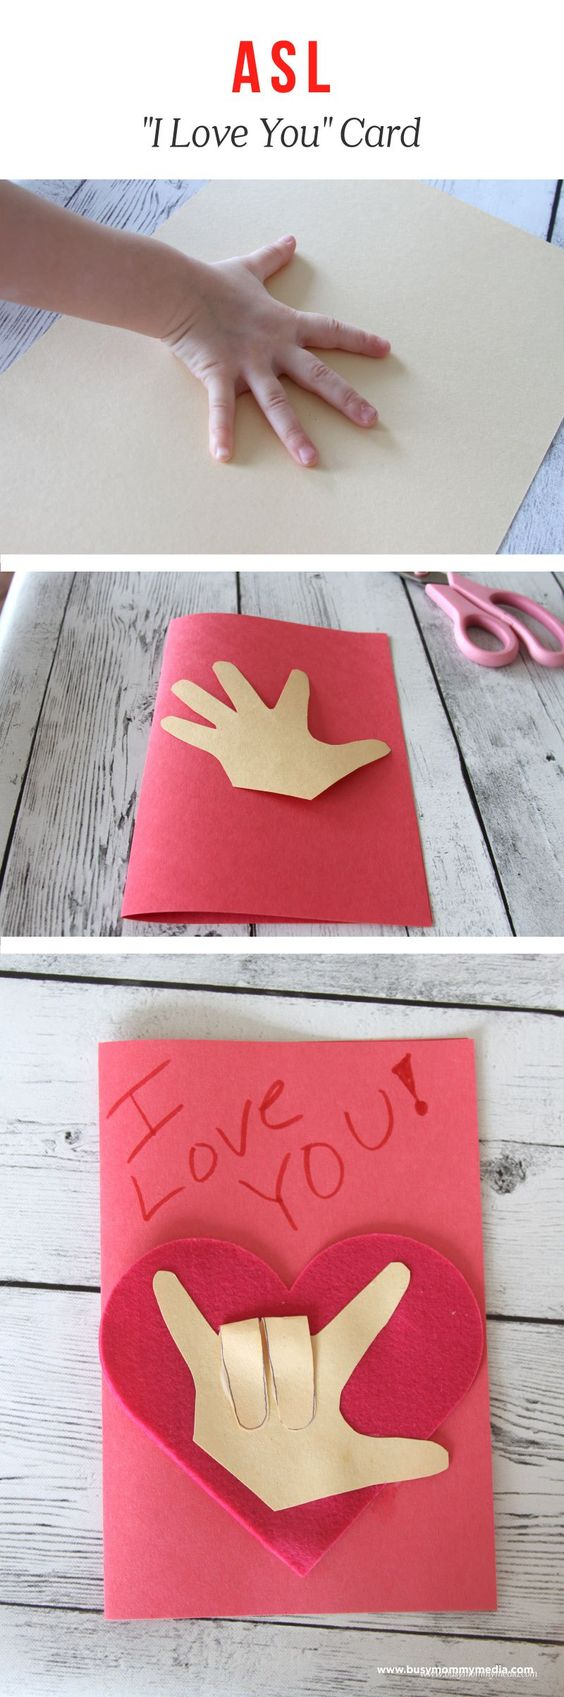 valentines day crafts you tube